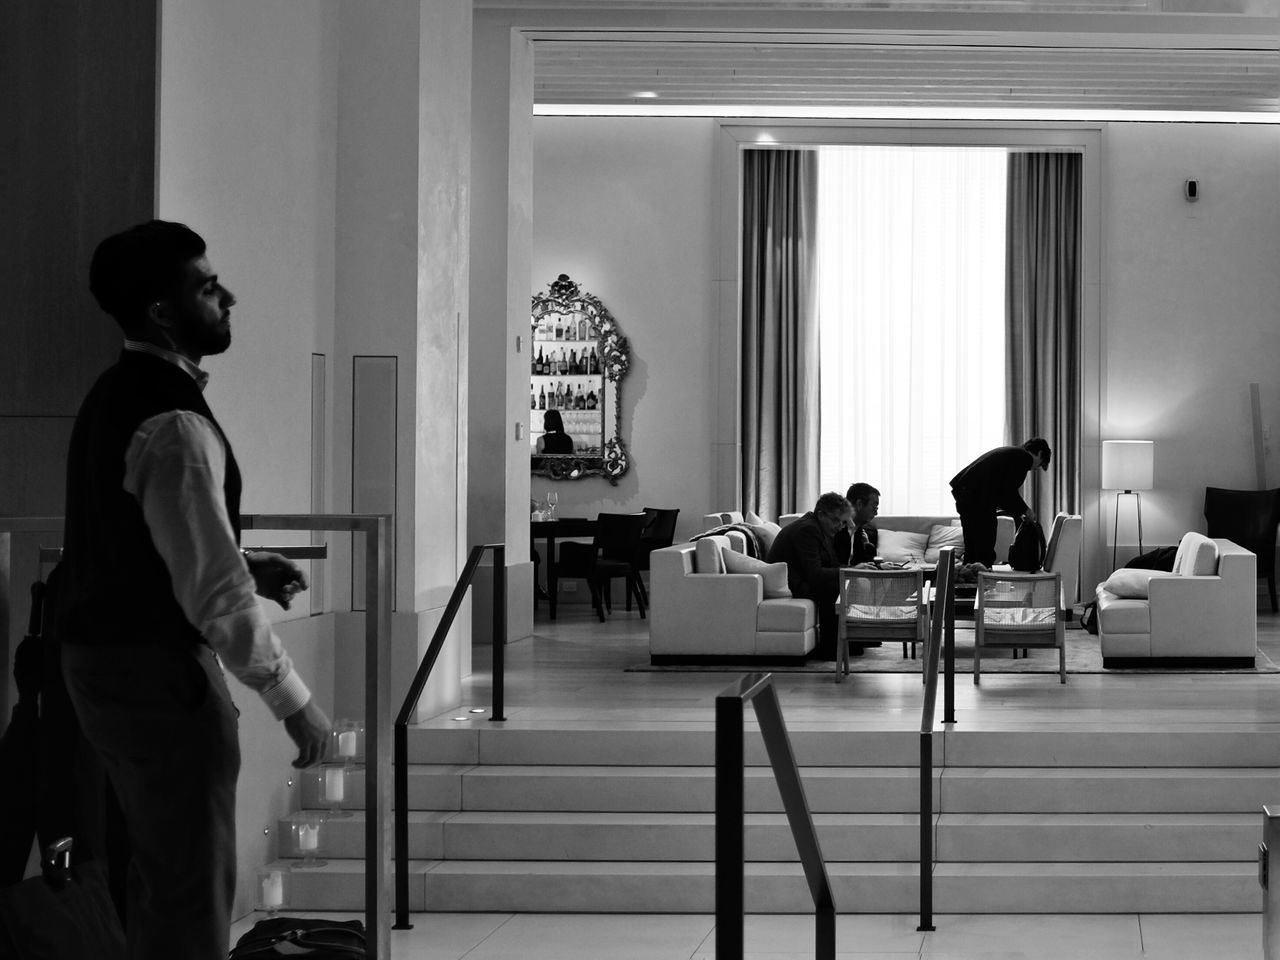 I miss this hotel... So peaceful ! The New York Edition. USA New York The Edition Hotel Lounge Lobby Peaceful Marriott Day Street Photography X100t Fujifilm